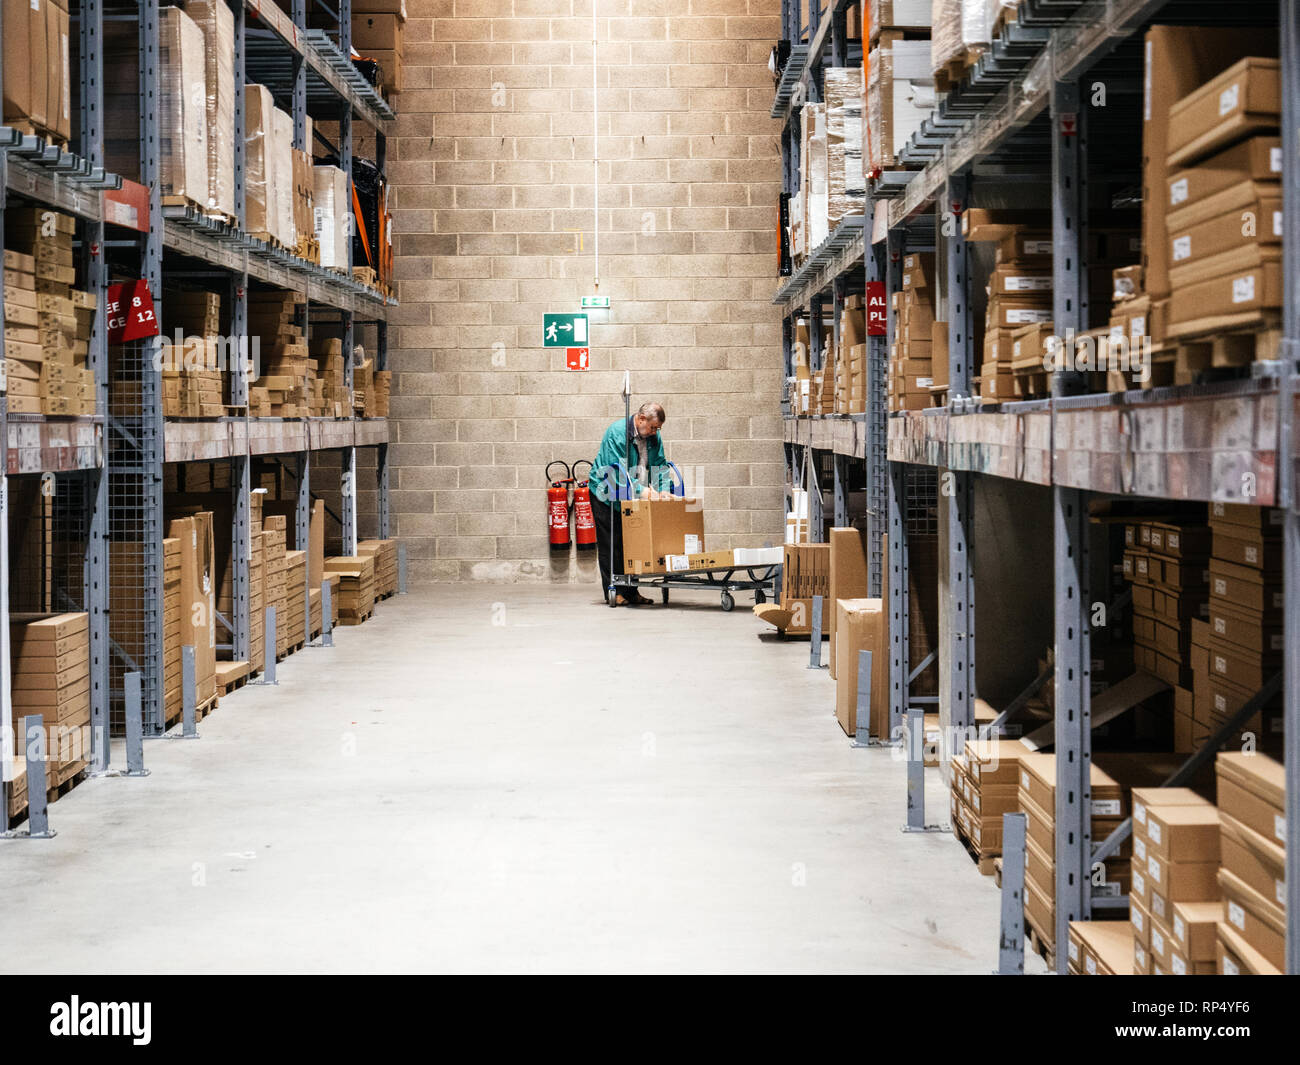 STRASBOURG FRANCE - SEP 3 2017: Perspective view of old senior man in furniture warehouse among shelves with carton boxes on trolley cart IKEA furniture shopping - Stock Image